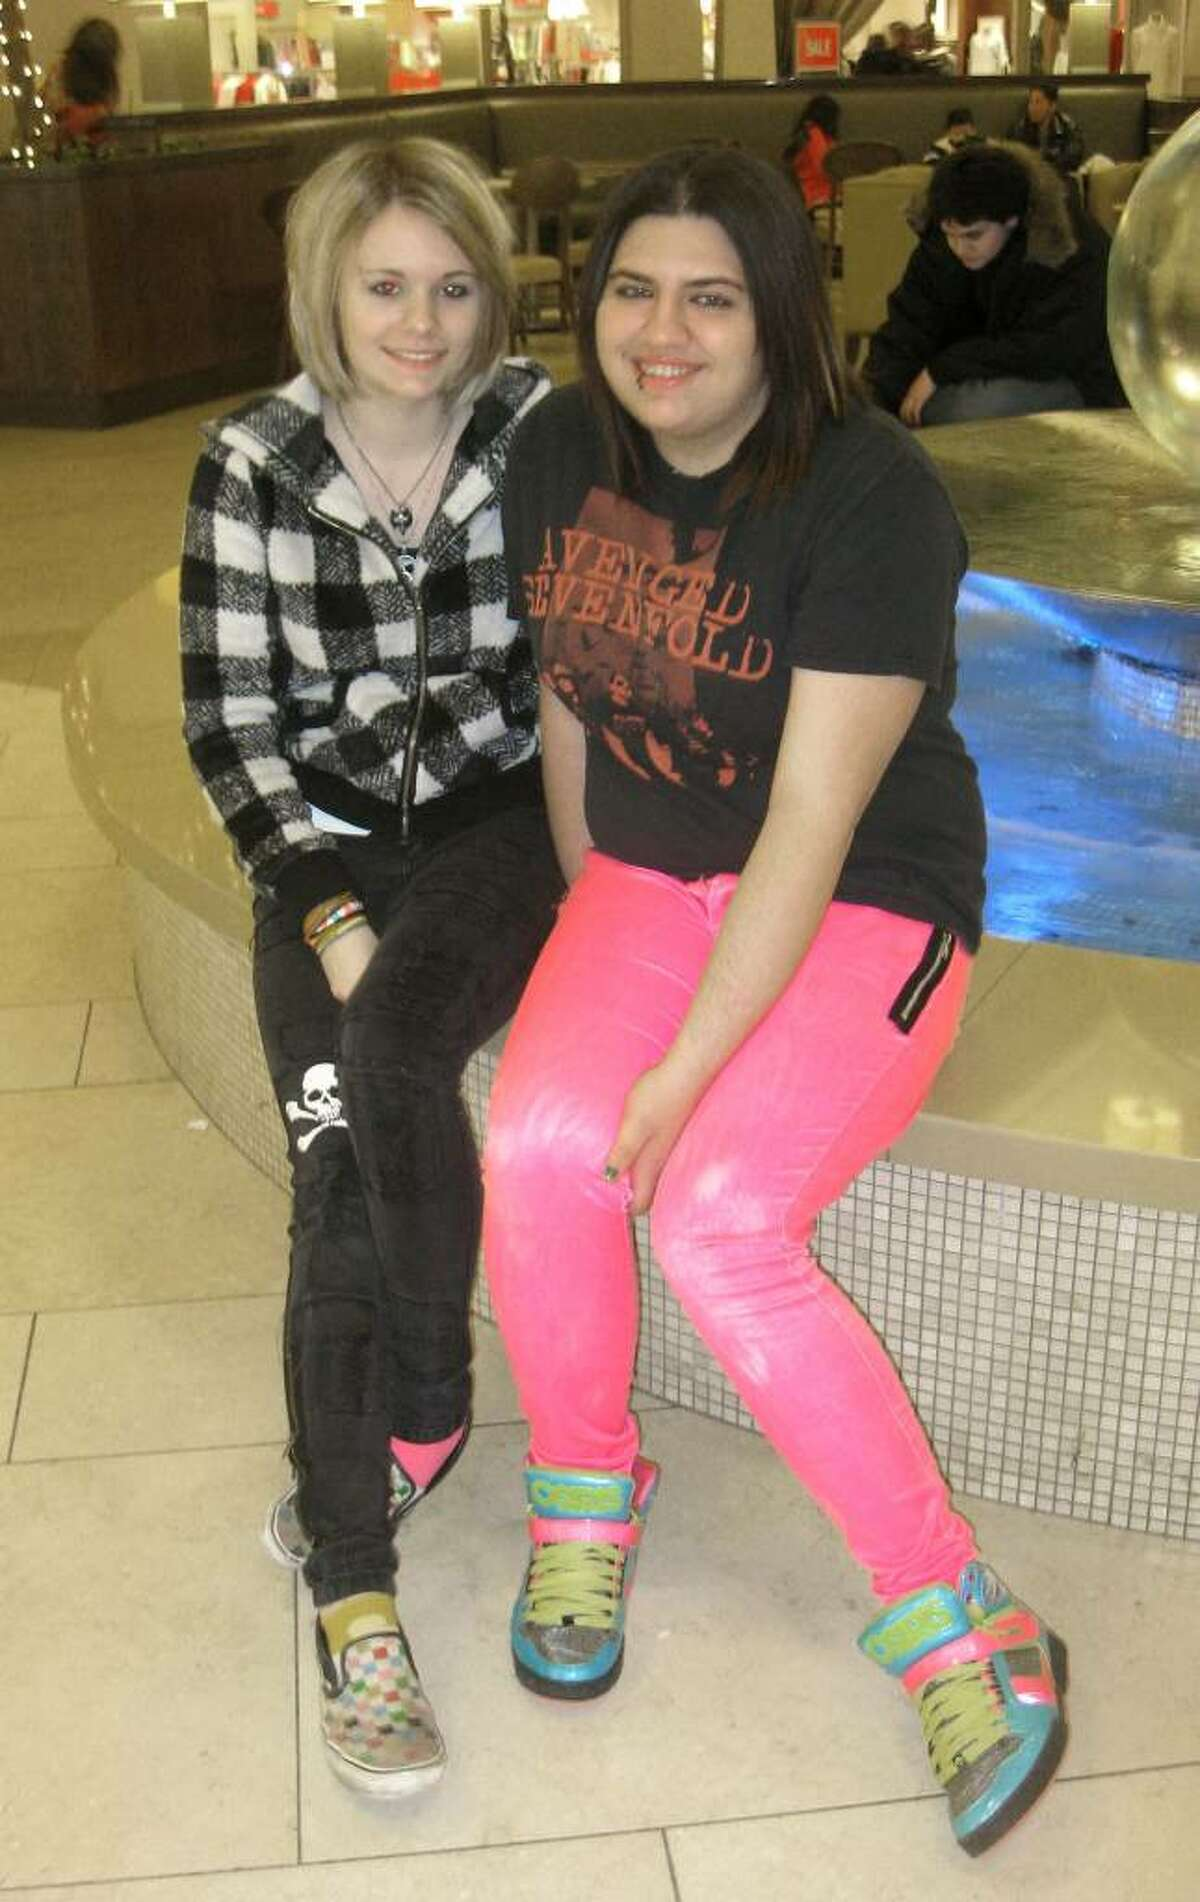 (from left) Sam Bucur, 18, and Sarah Steiner, 18, both of Newtown, sit in on the fountain at the Danbury Fair Mall Tuesday night. They come to the mall to go shopping and eat food.